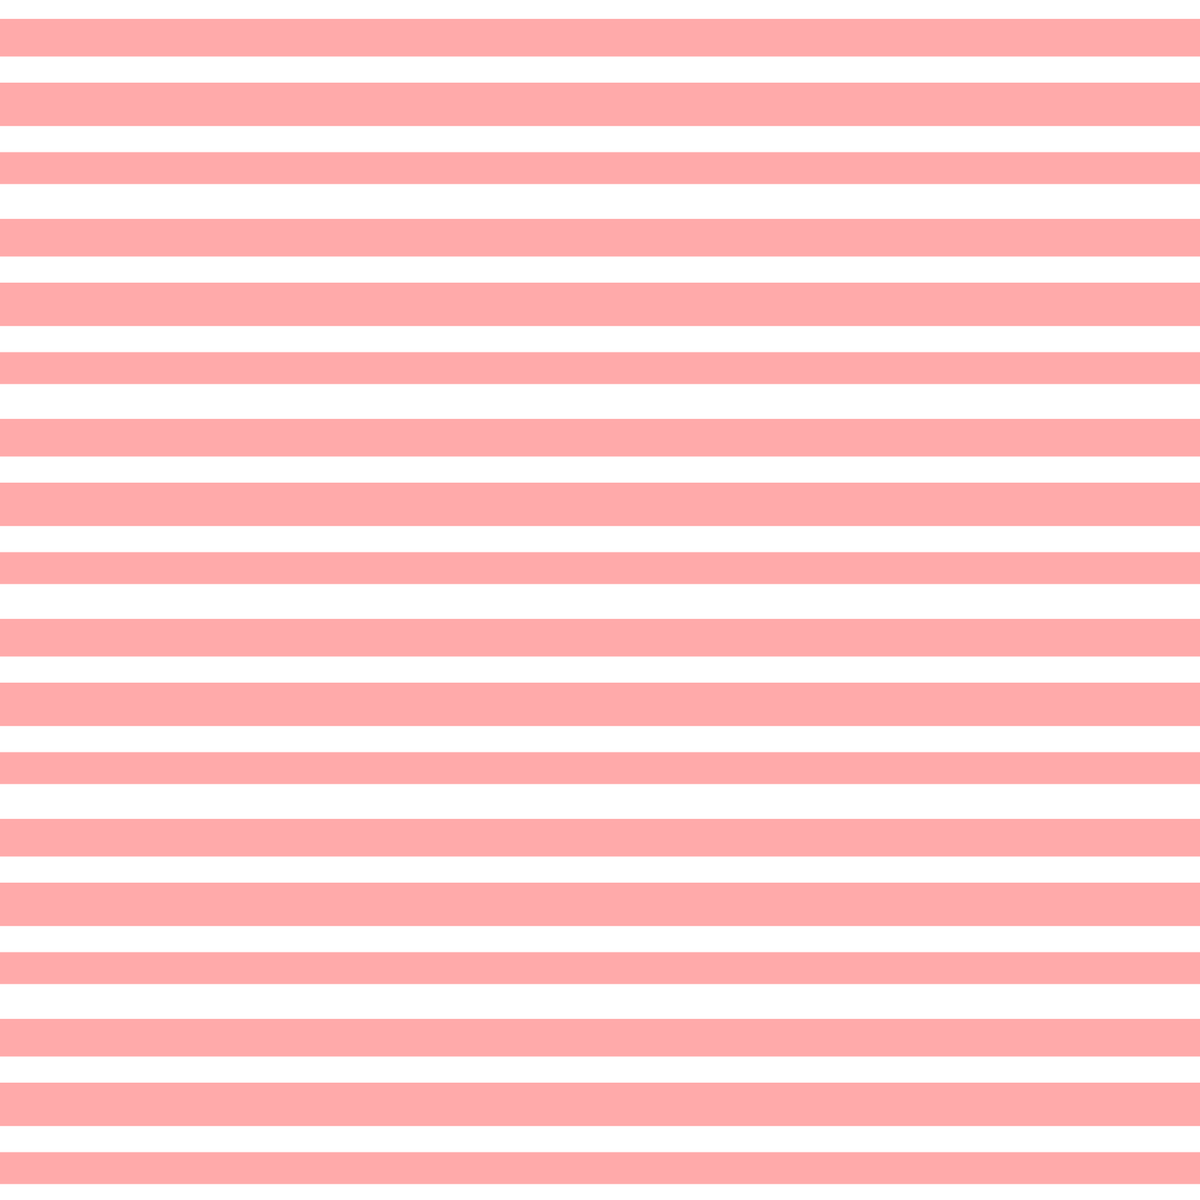 FREE Printable Cheerfully Striped Pattern Paper